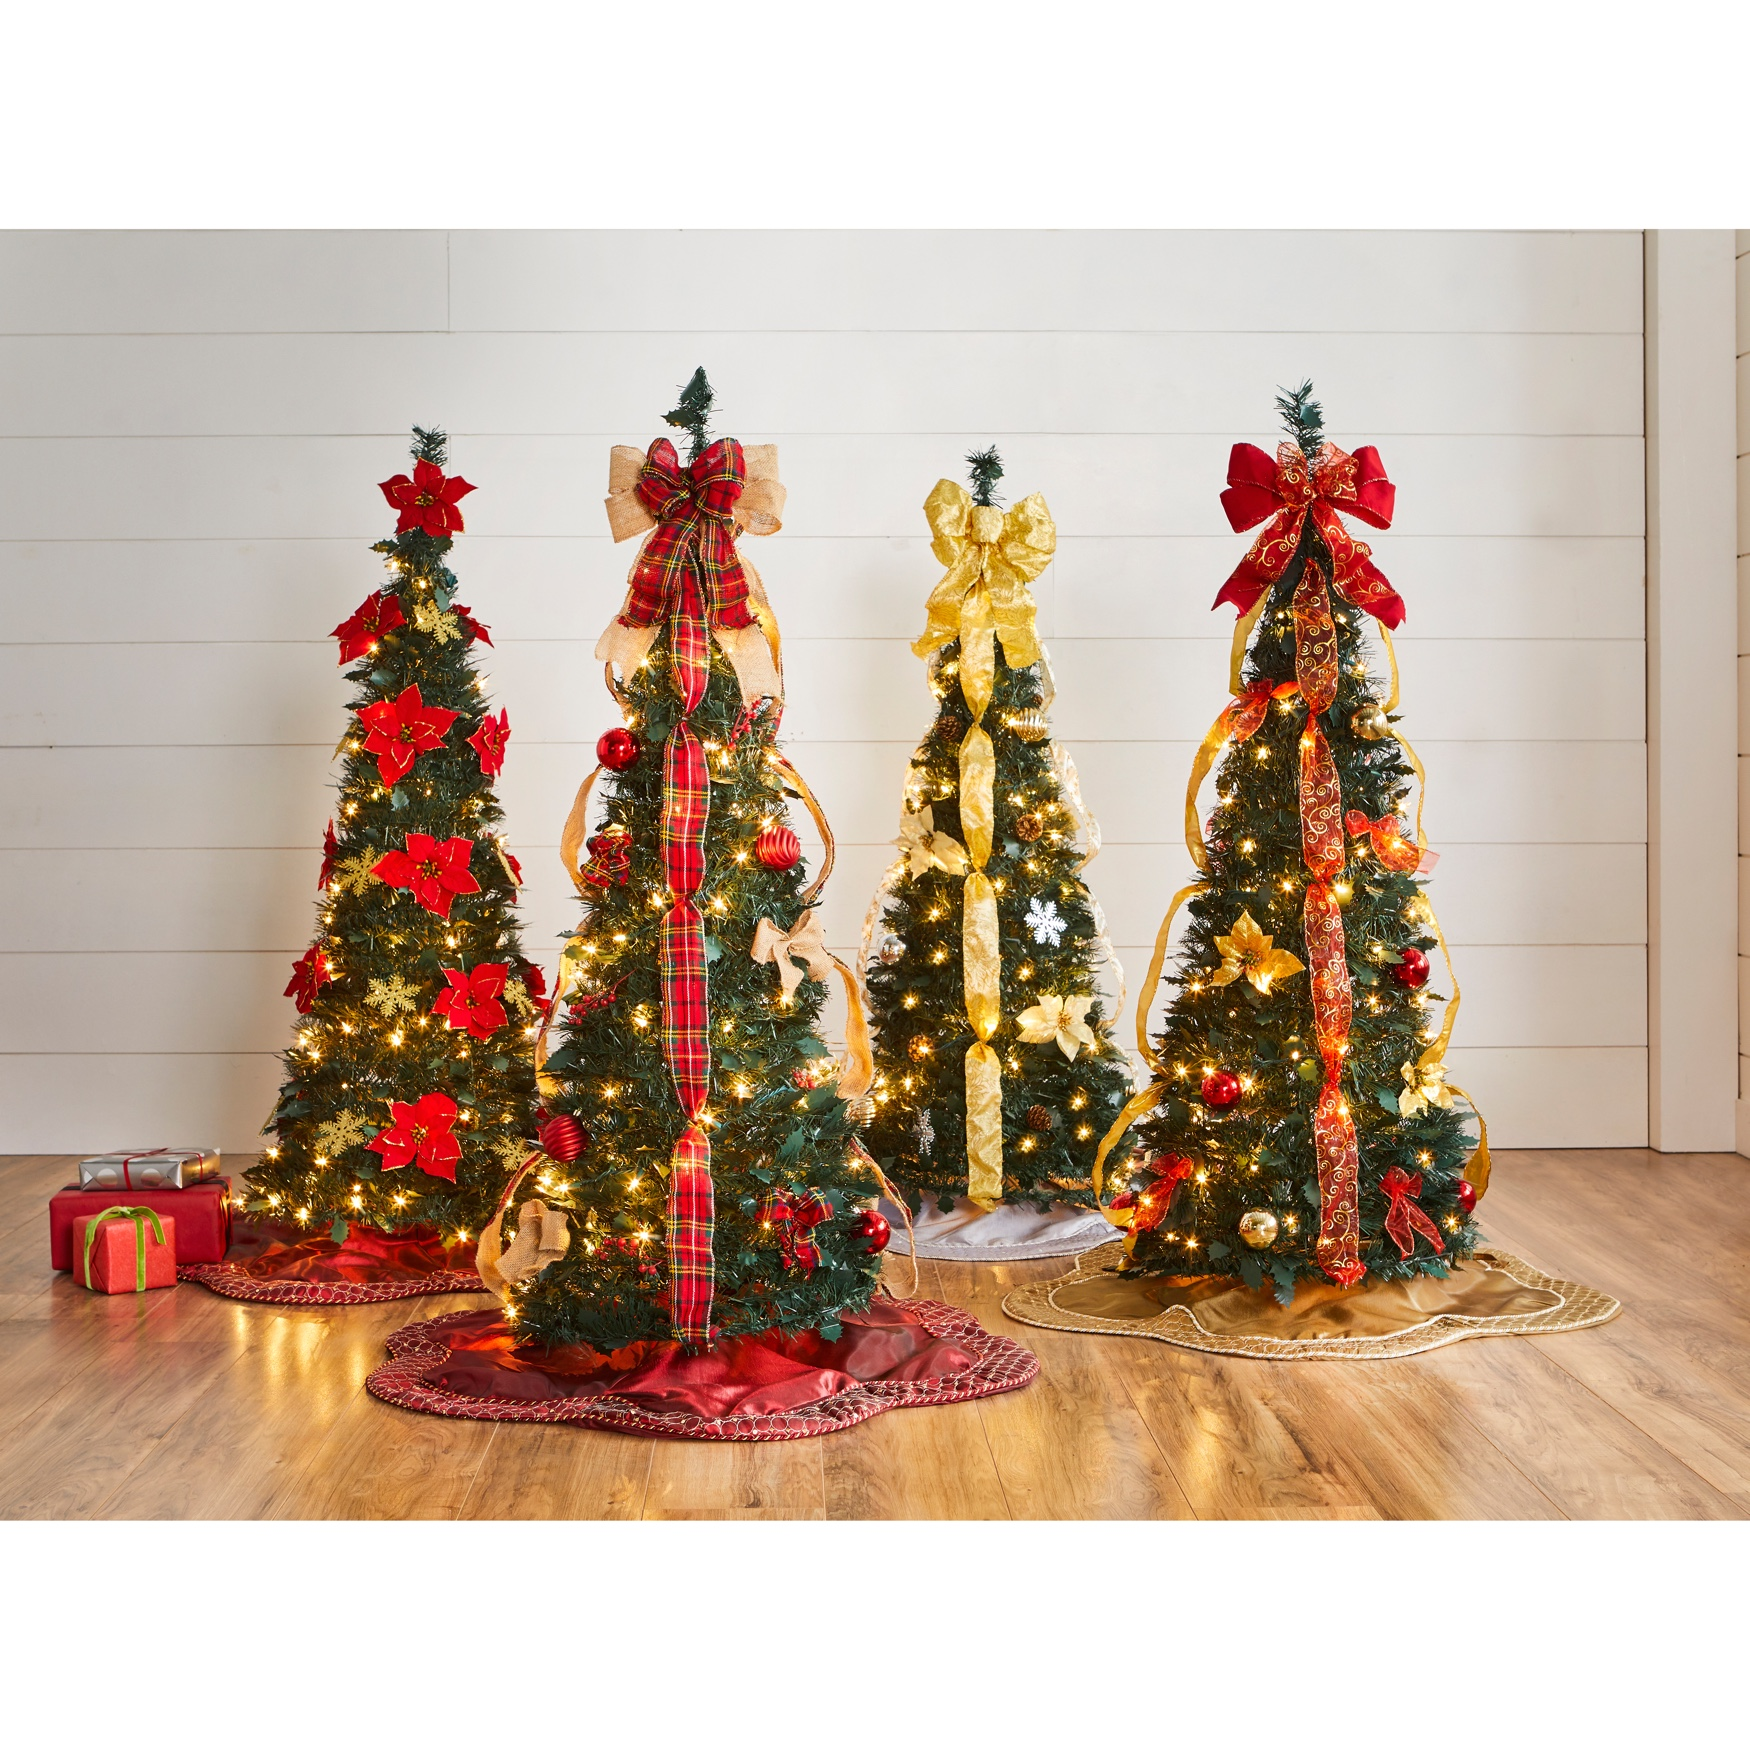 Pop Up Christmas Trees With Lights: Fully Decorated Pre-Lit 4½' Pop-Up Christmas Tree